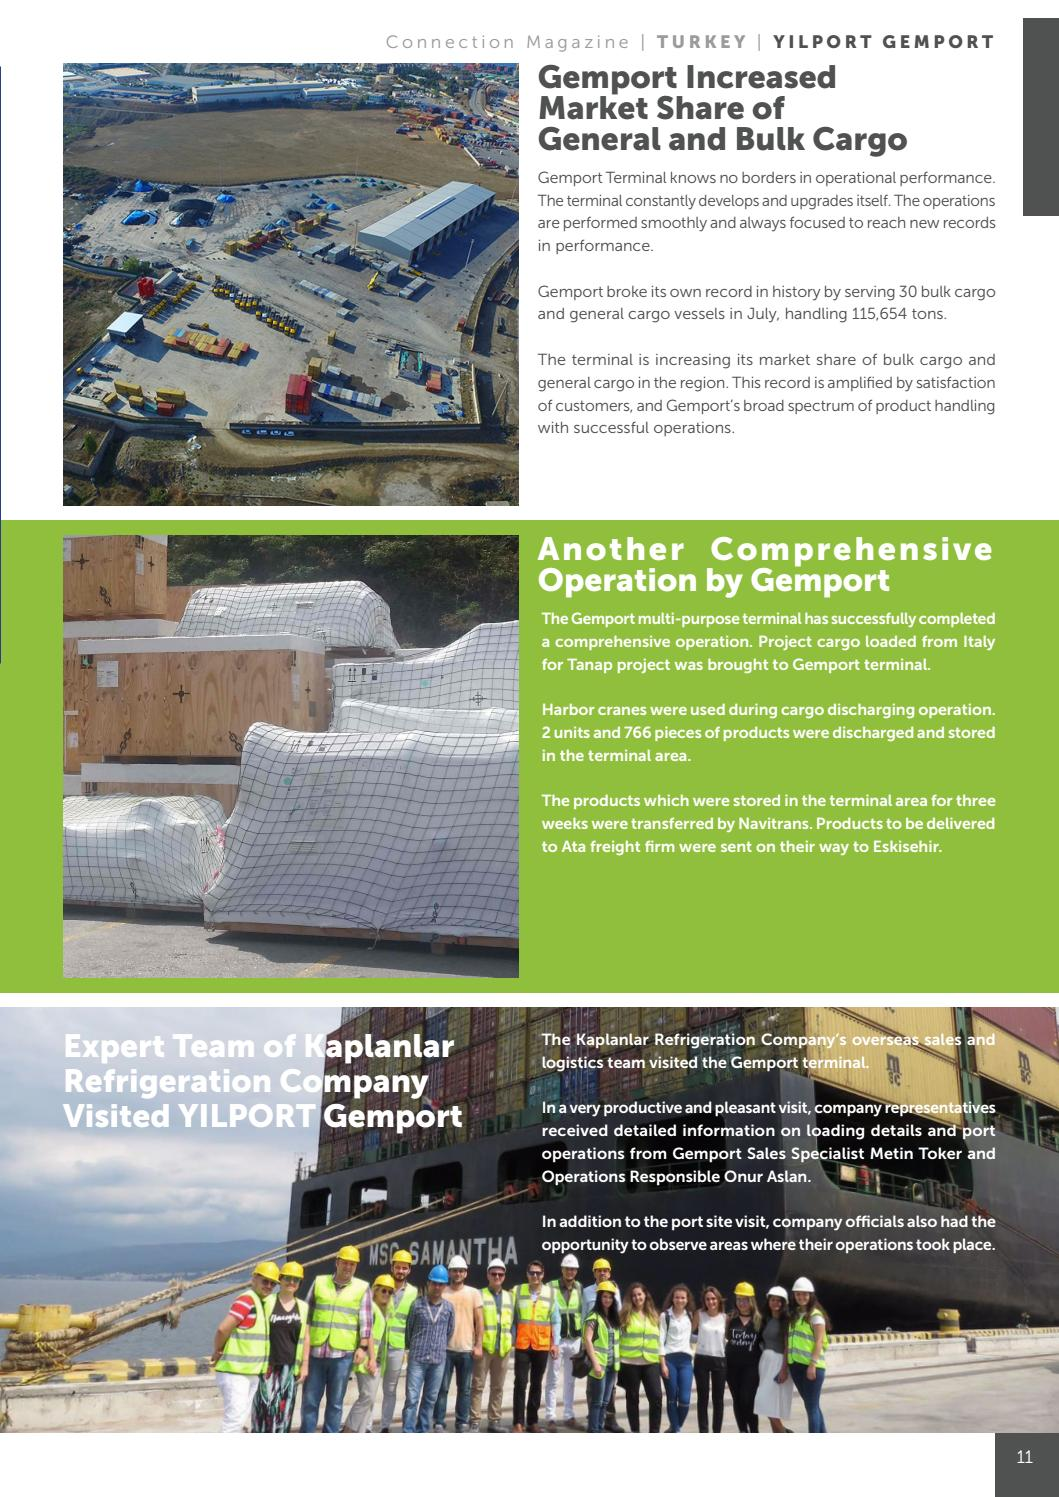 YPH Connection Quarterly Corporate Magazine Q3 2017 by